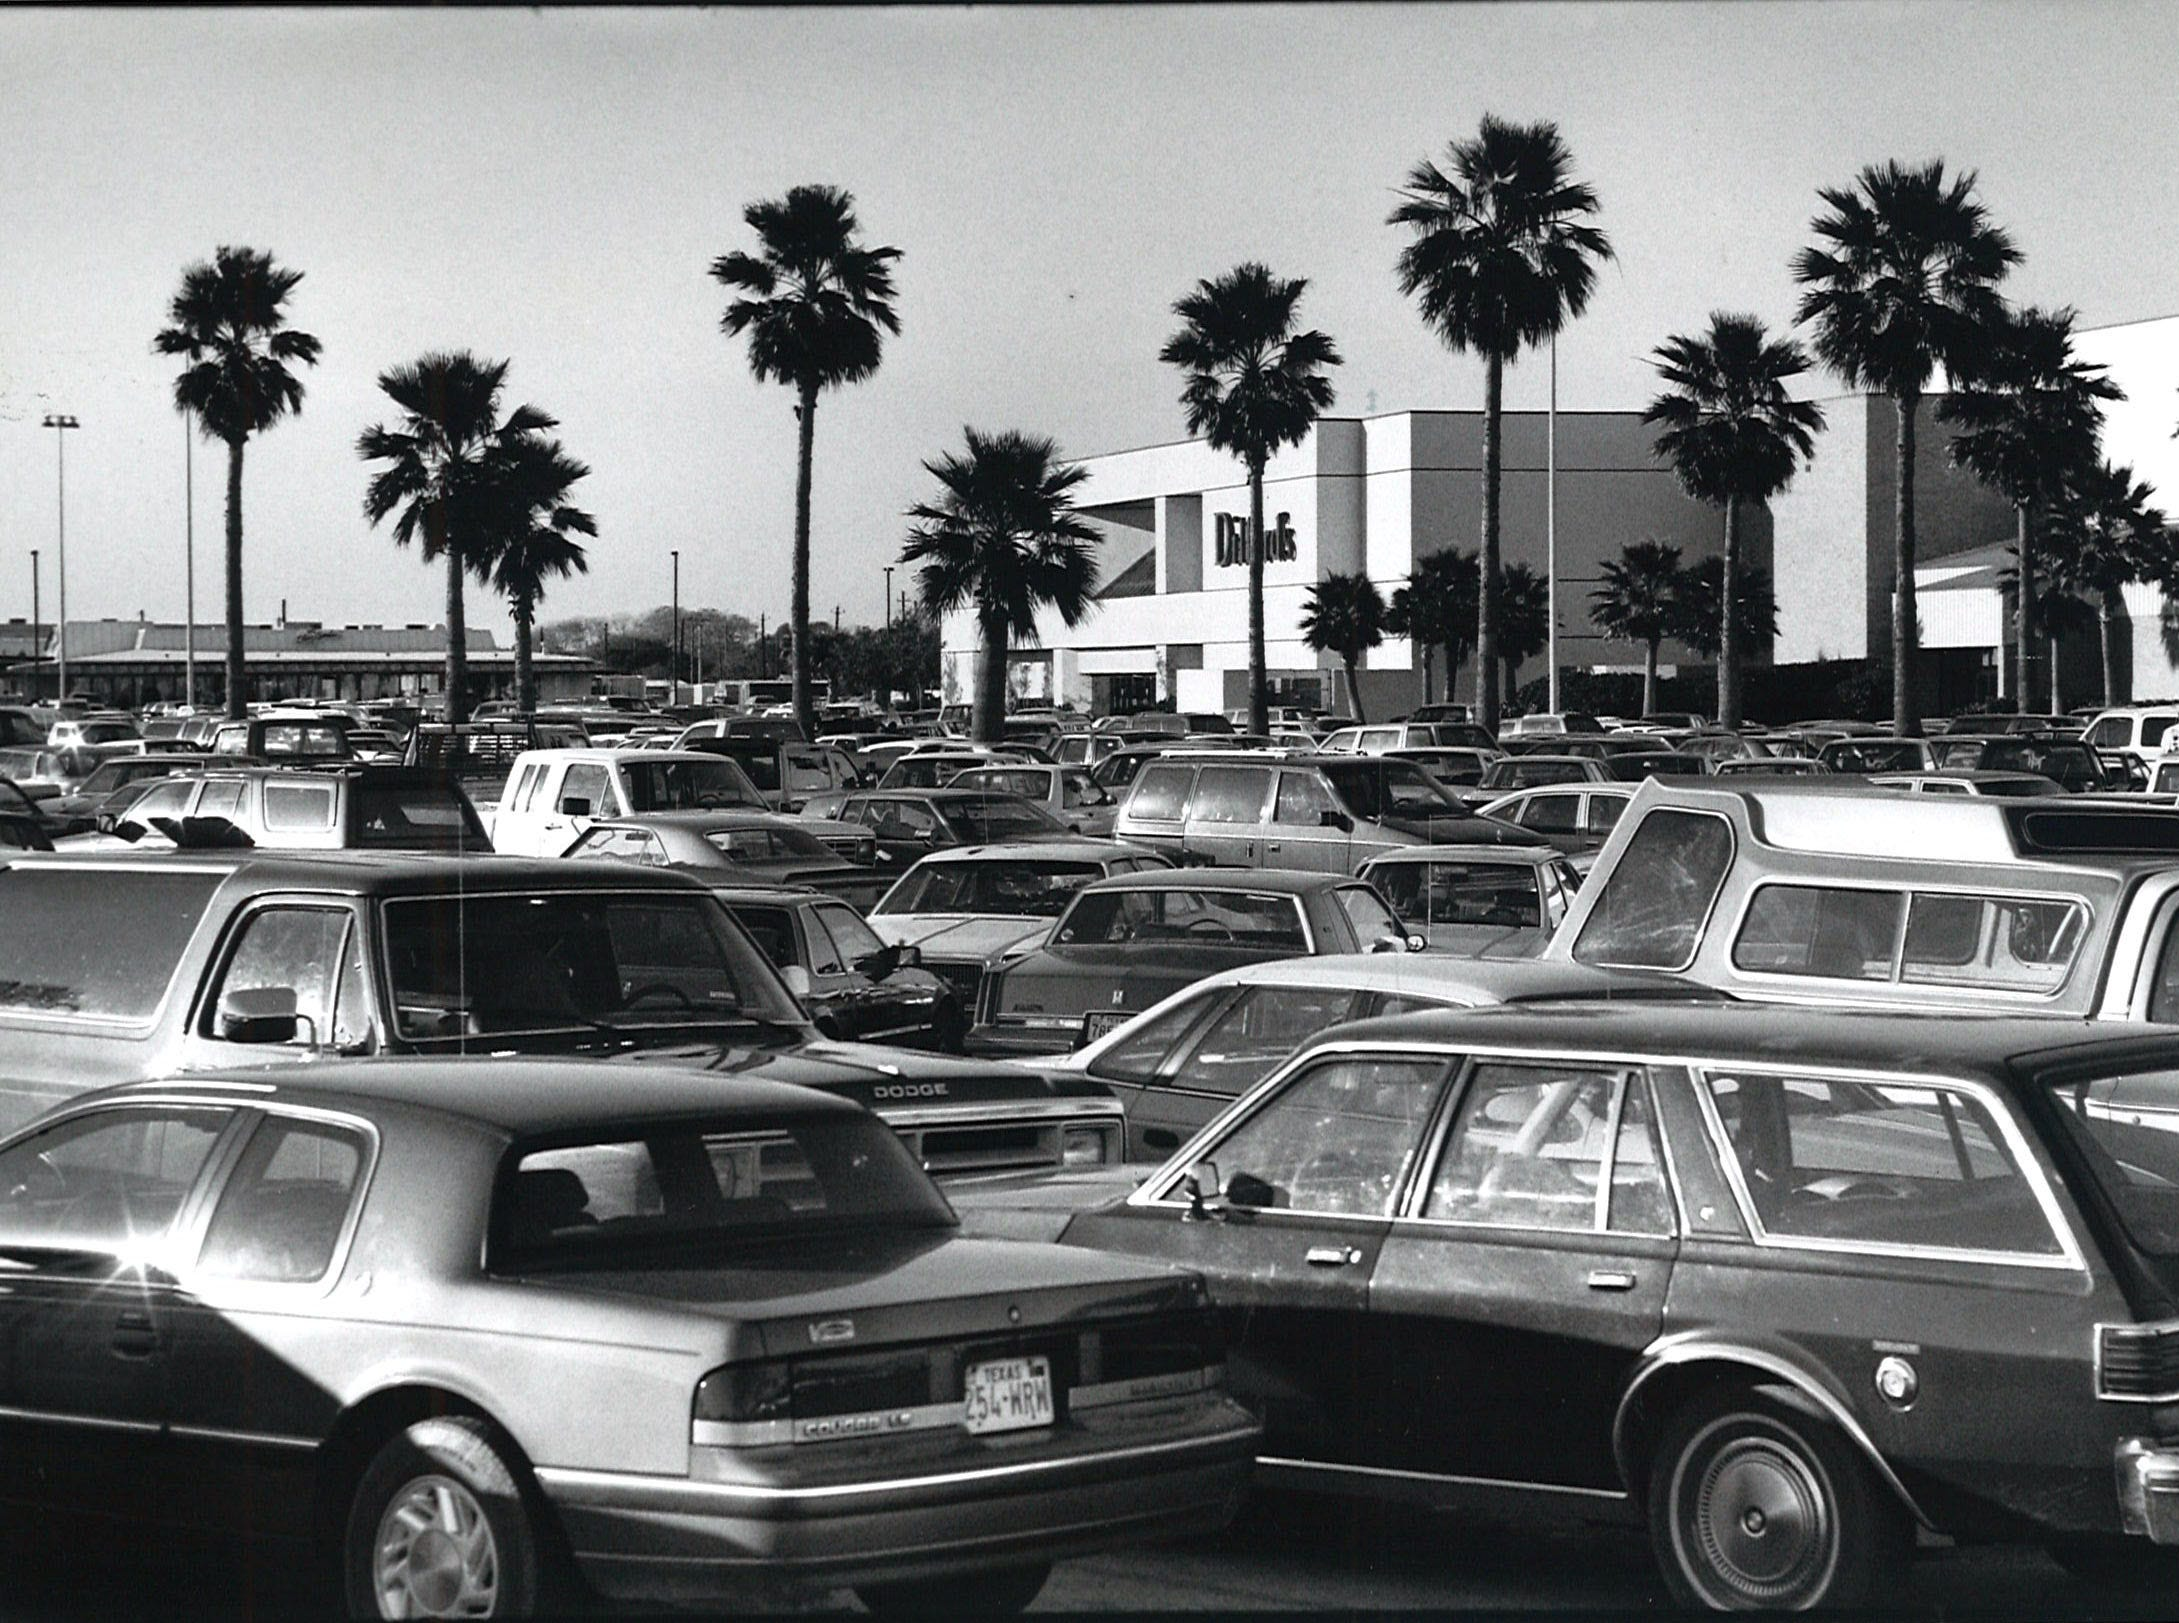 Vehicles pack the parking lot at Padre Staples Mall in Corpus Christi on Dec. 9, 1990.